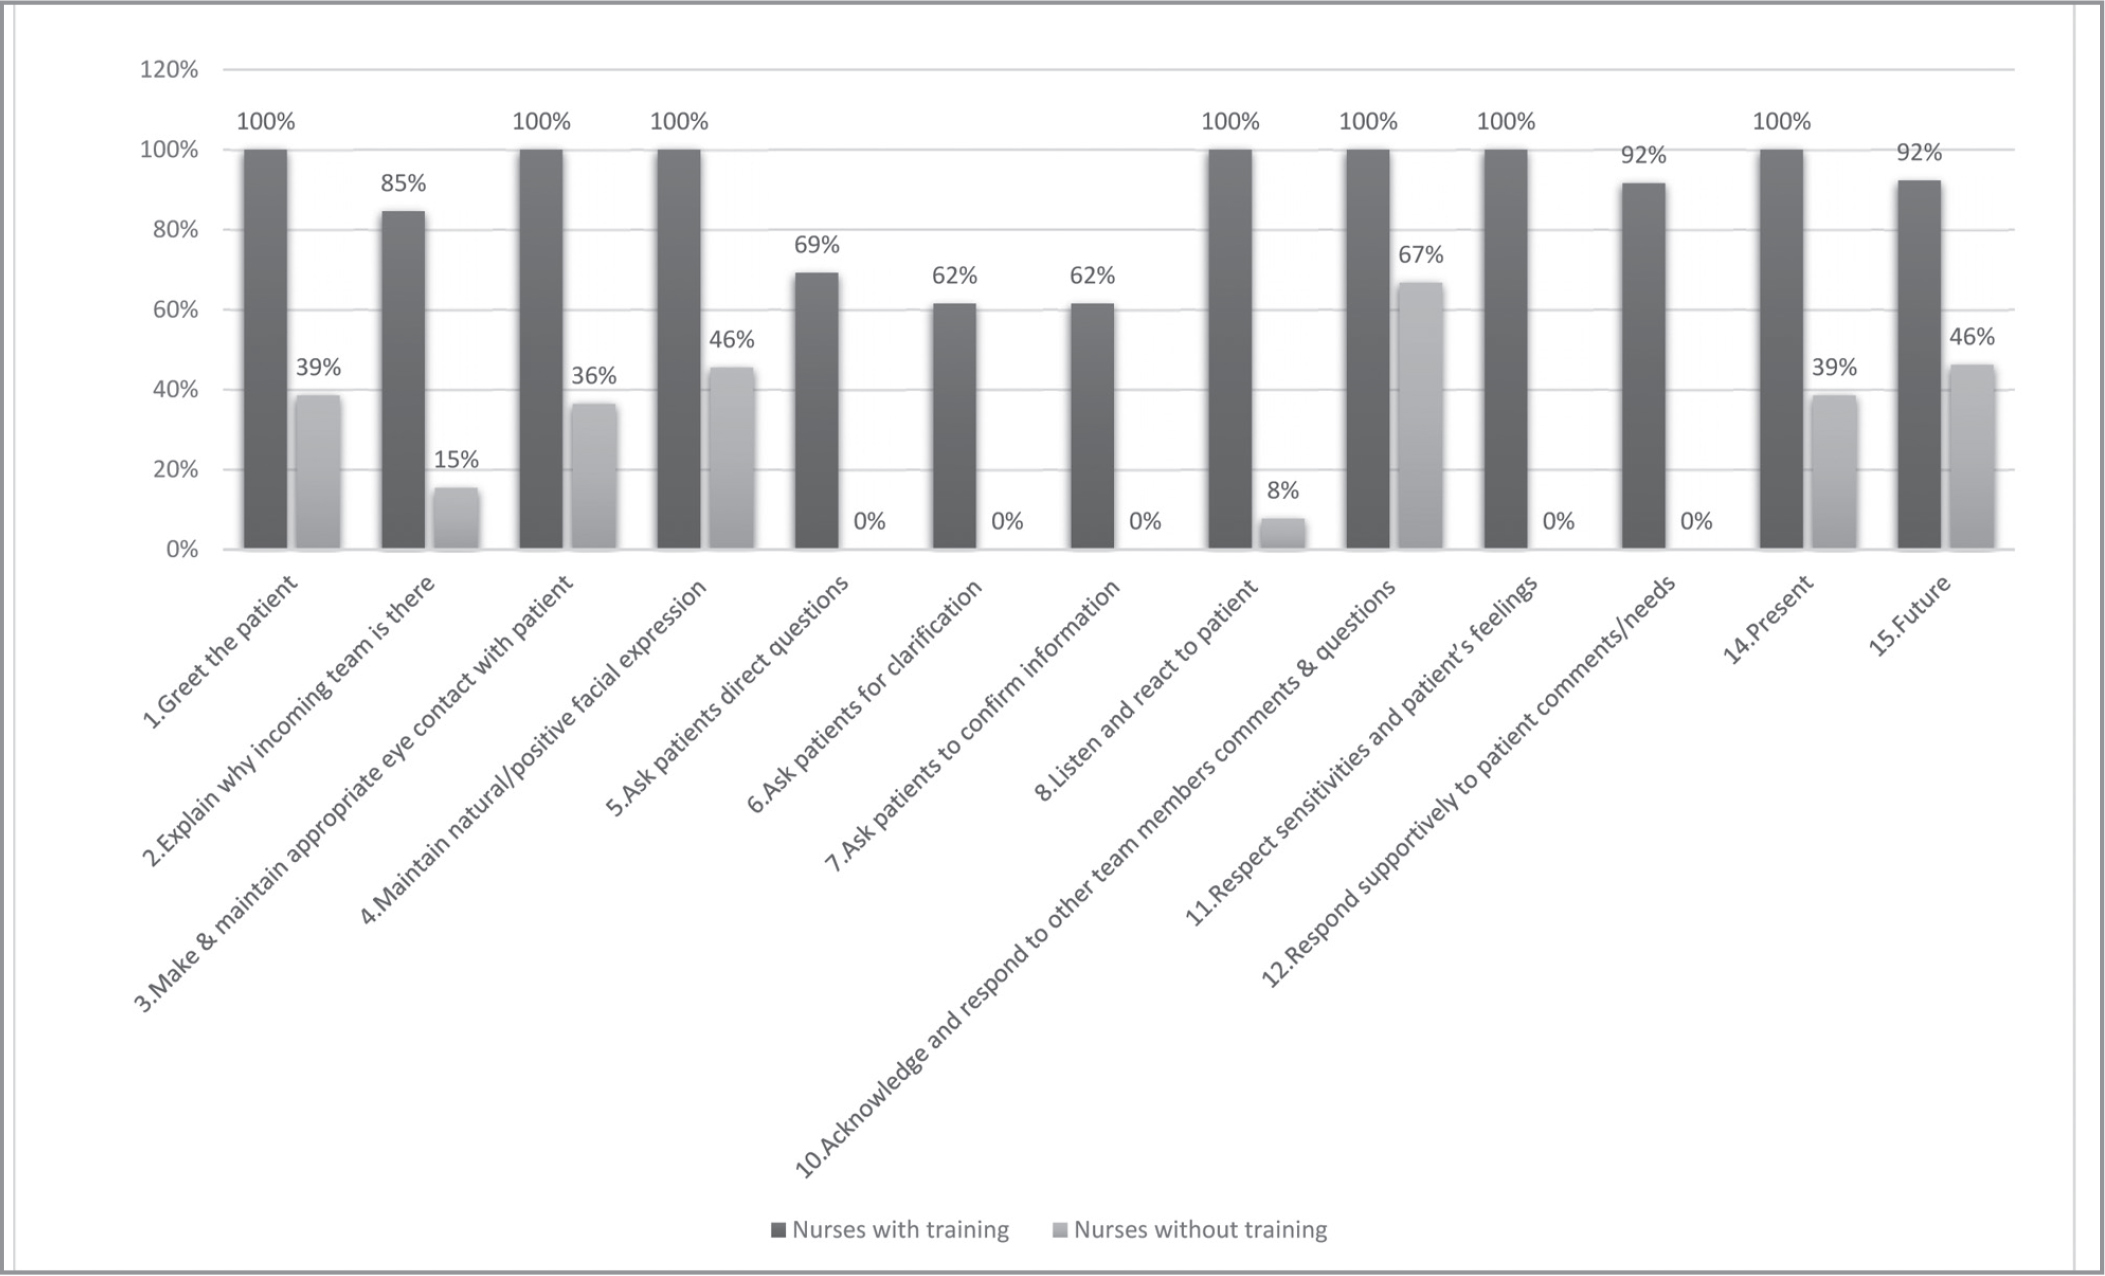 Behaviors during bedside handover by nurses who had or had not received bedside handover training.